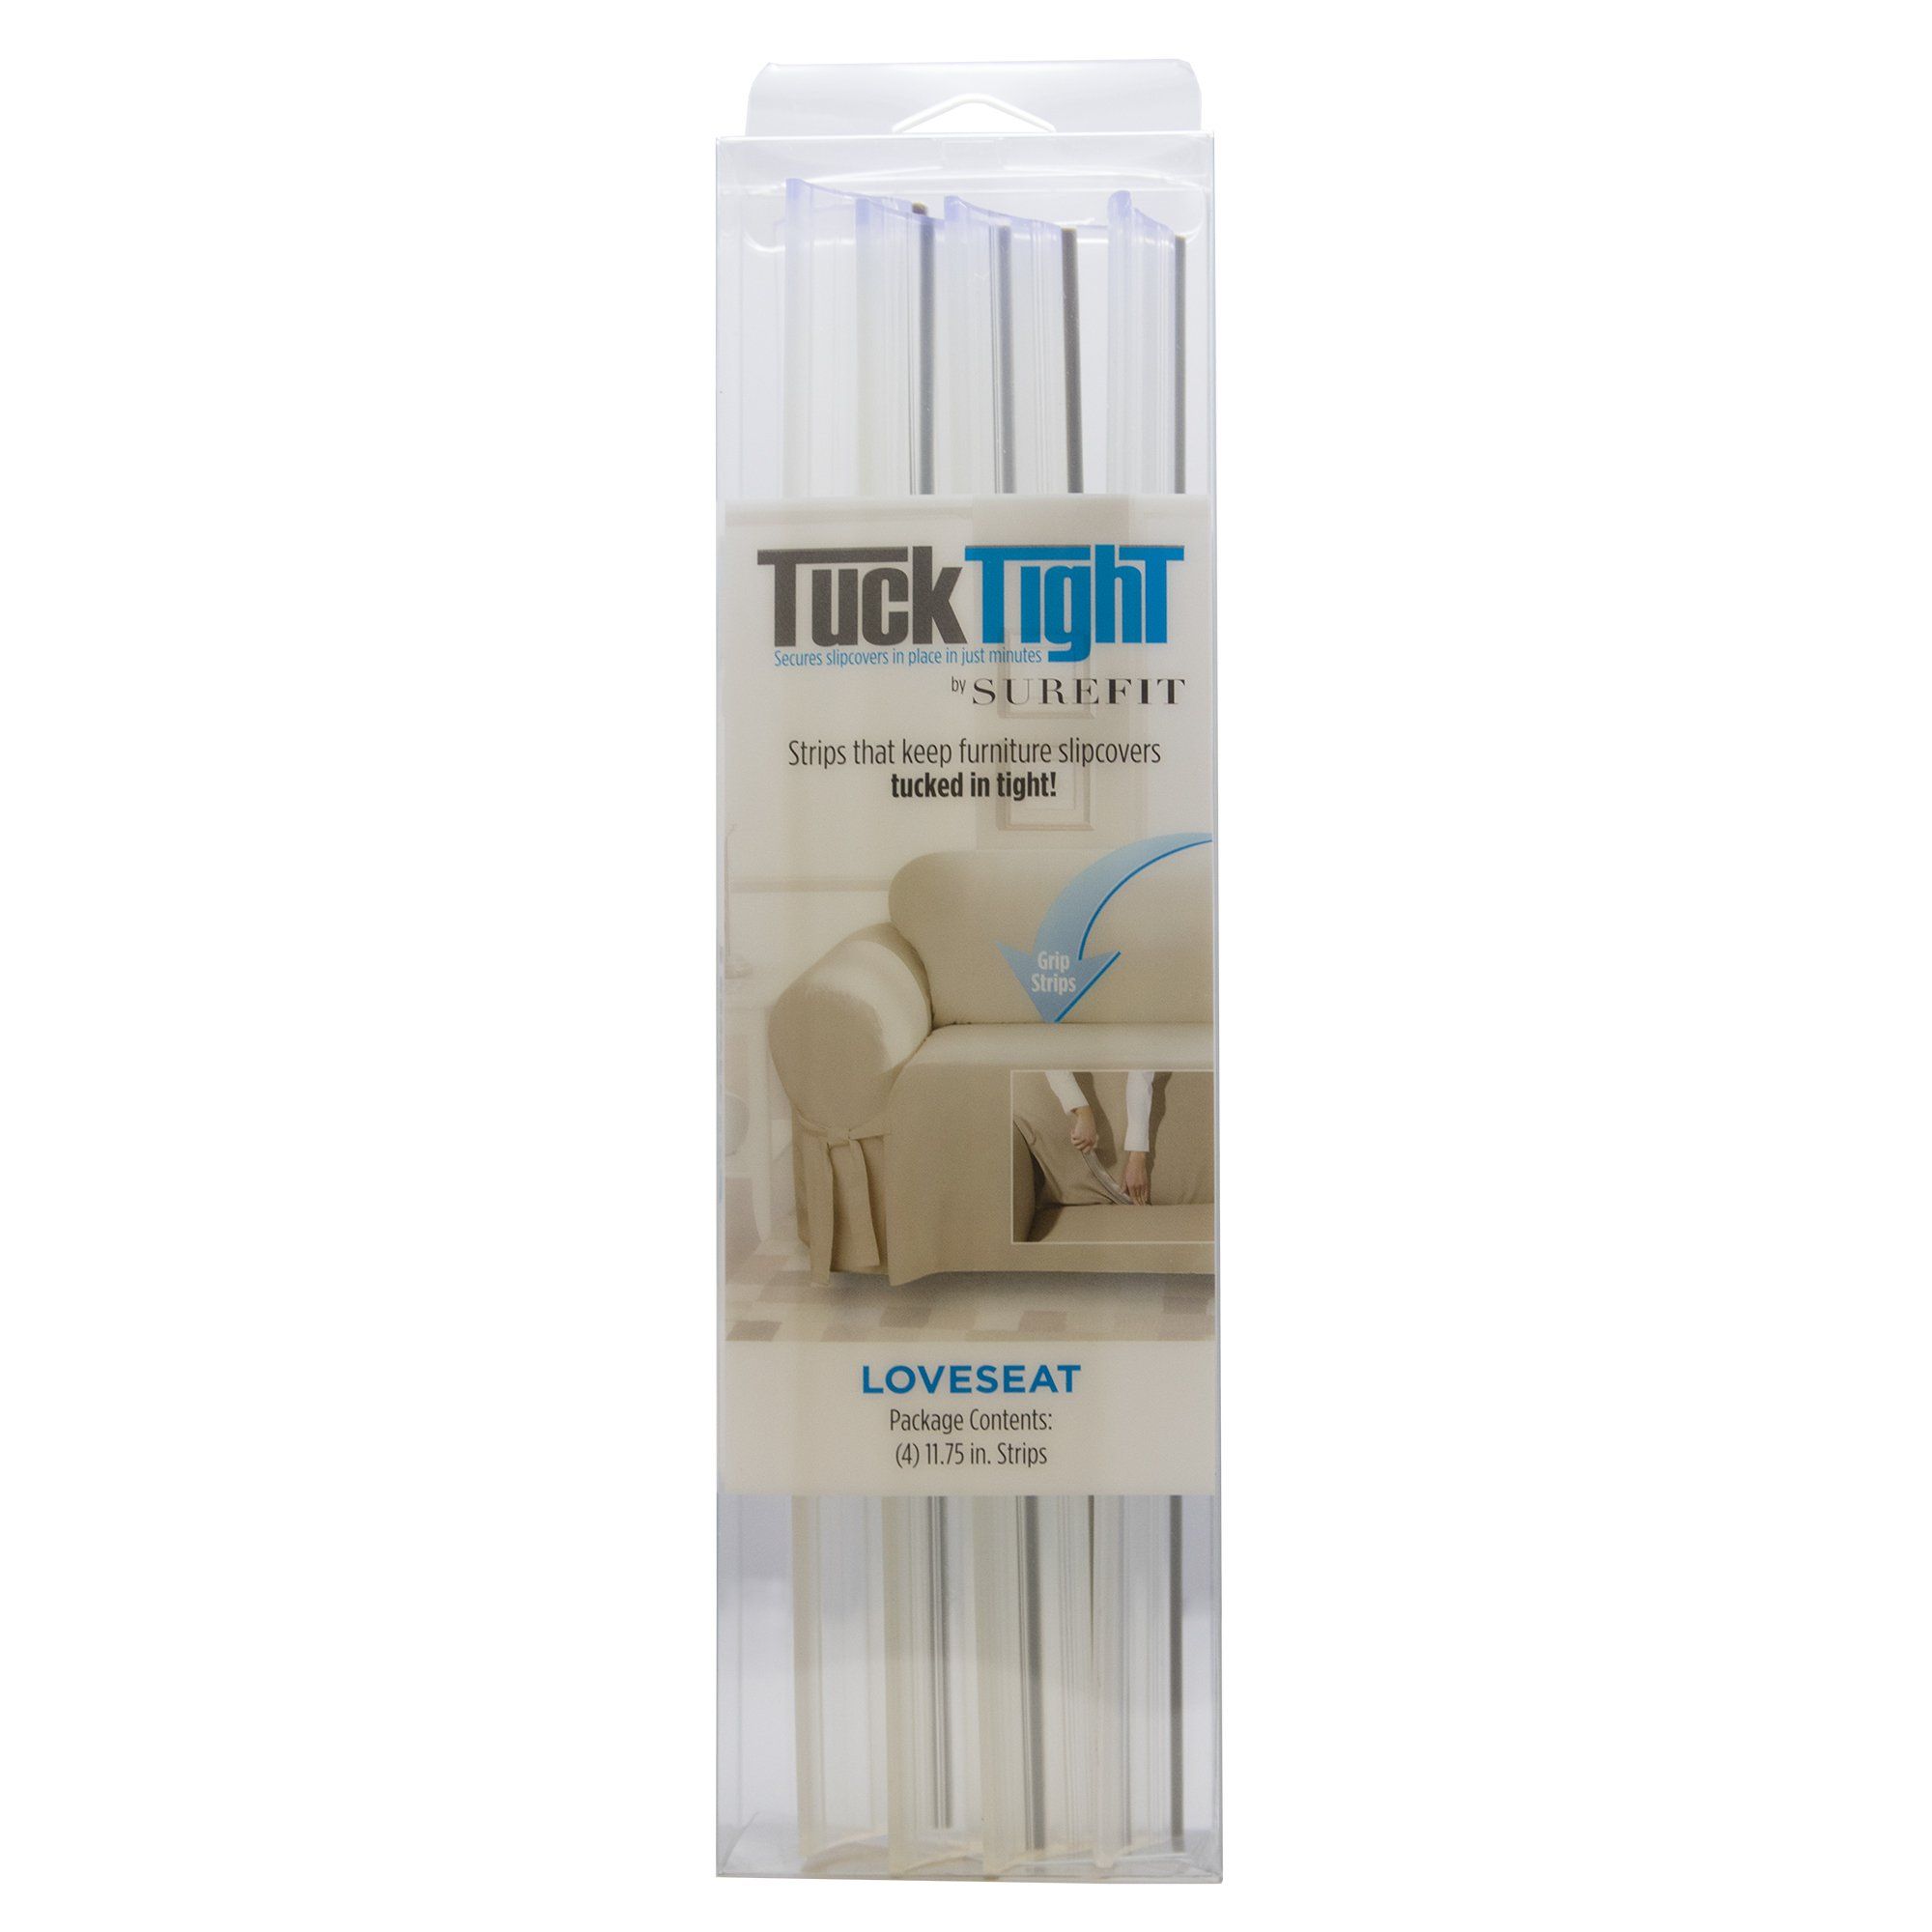 Sure Fit Tuck Tight for Loveaseat (4 strips)